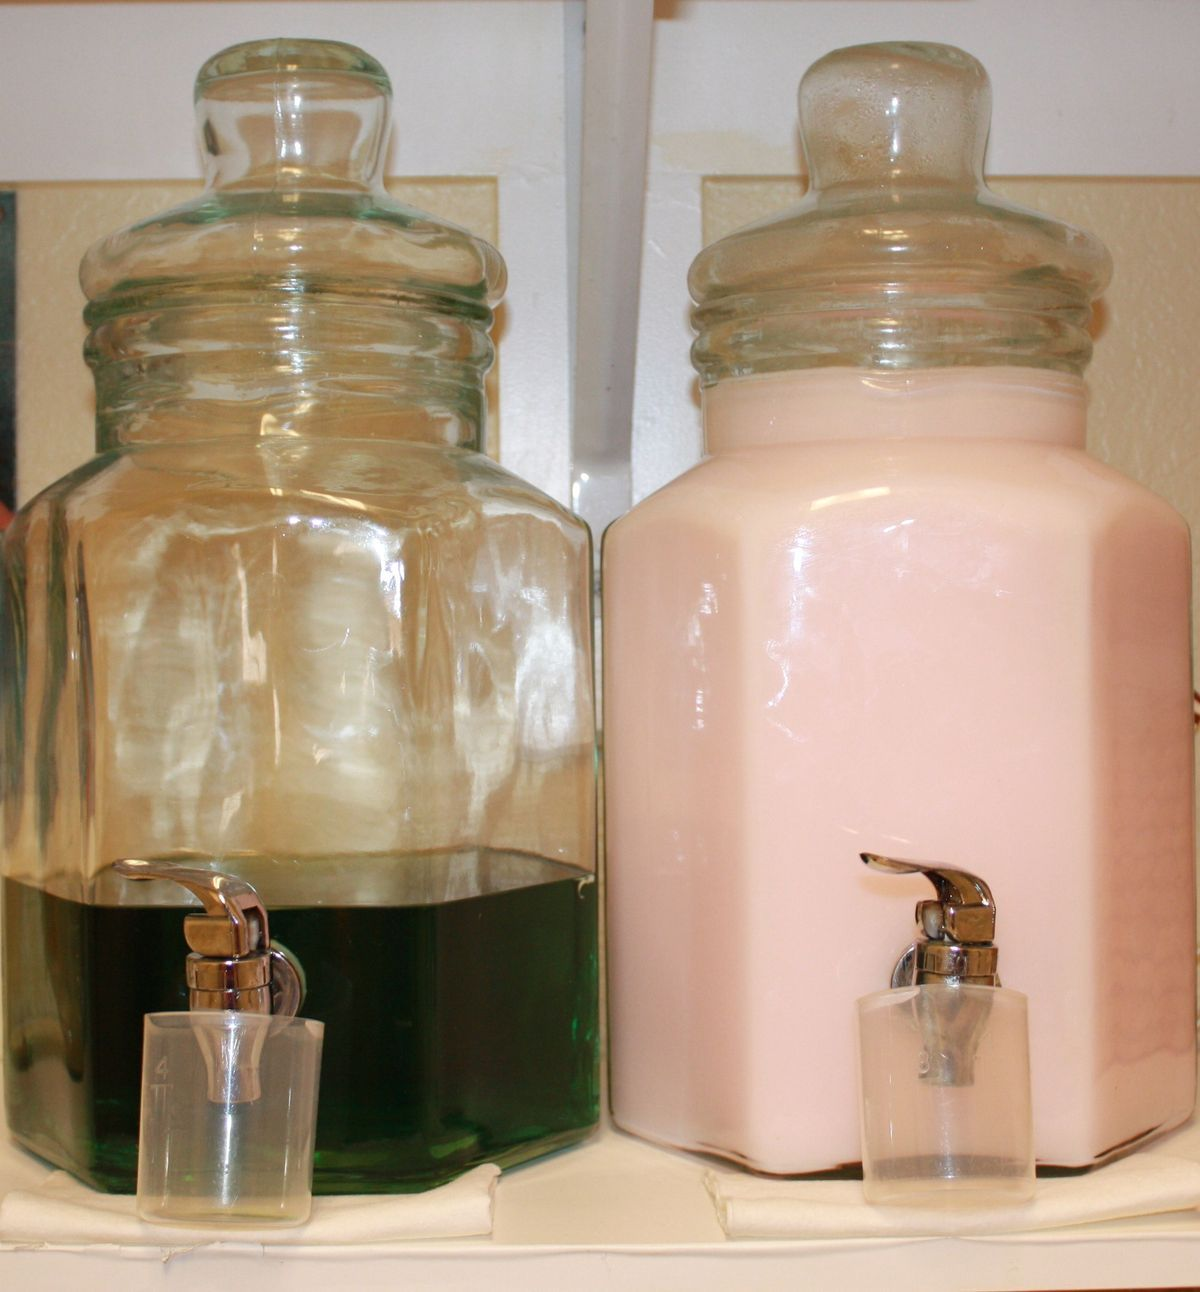 Cool Idea Storing Laundry Detergent And Fabric Softener In Pretty Drink Dispensers Useful And Practical 2019